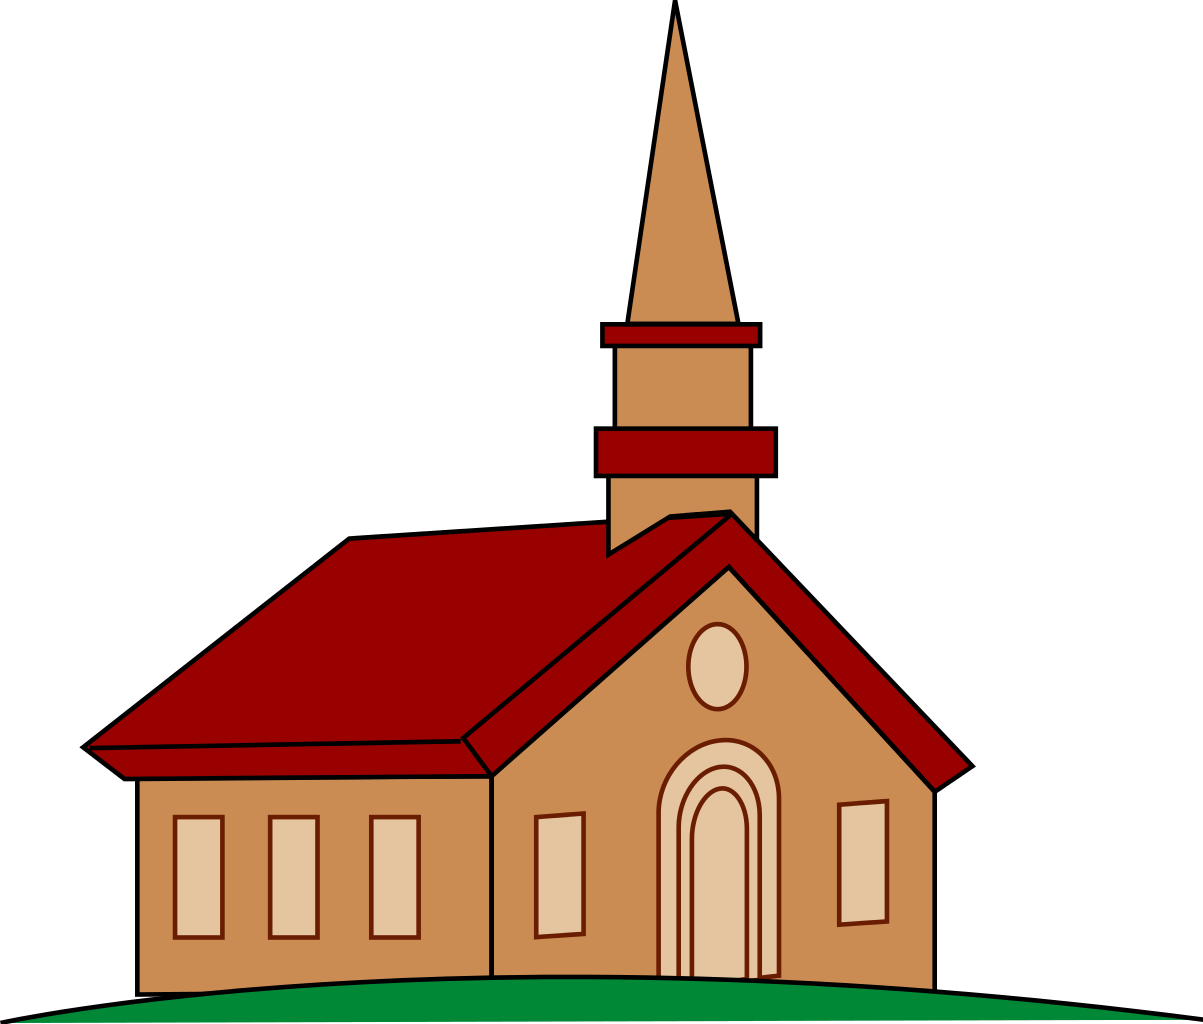 Church cartoon clipart transparent Free Clipart Church | Free download best Free Clipart Church on ... transparent